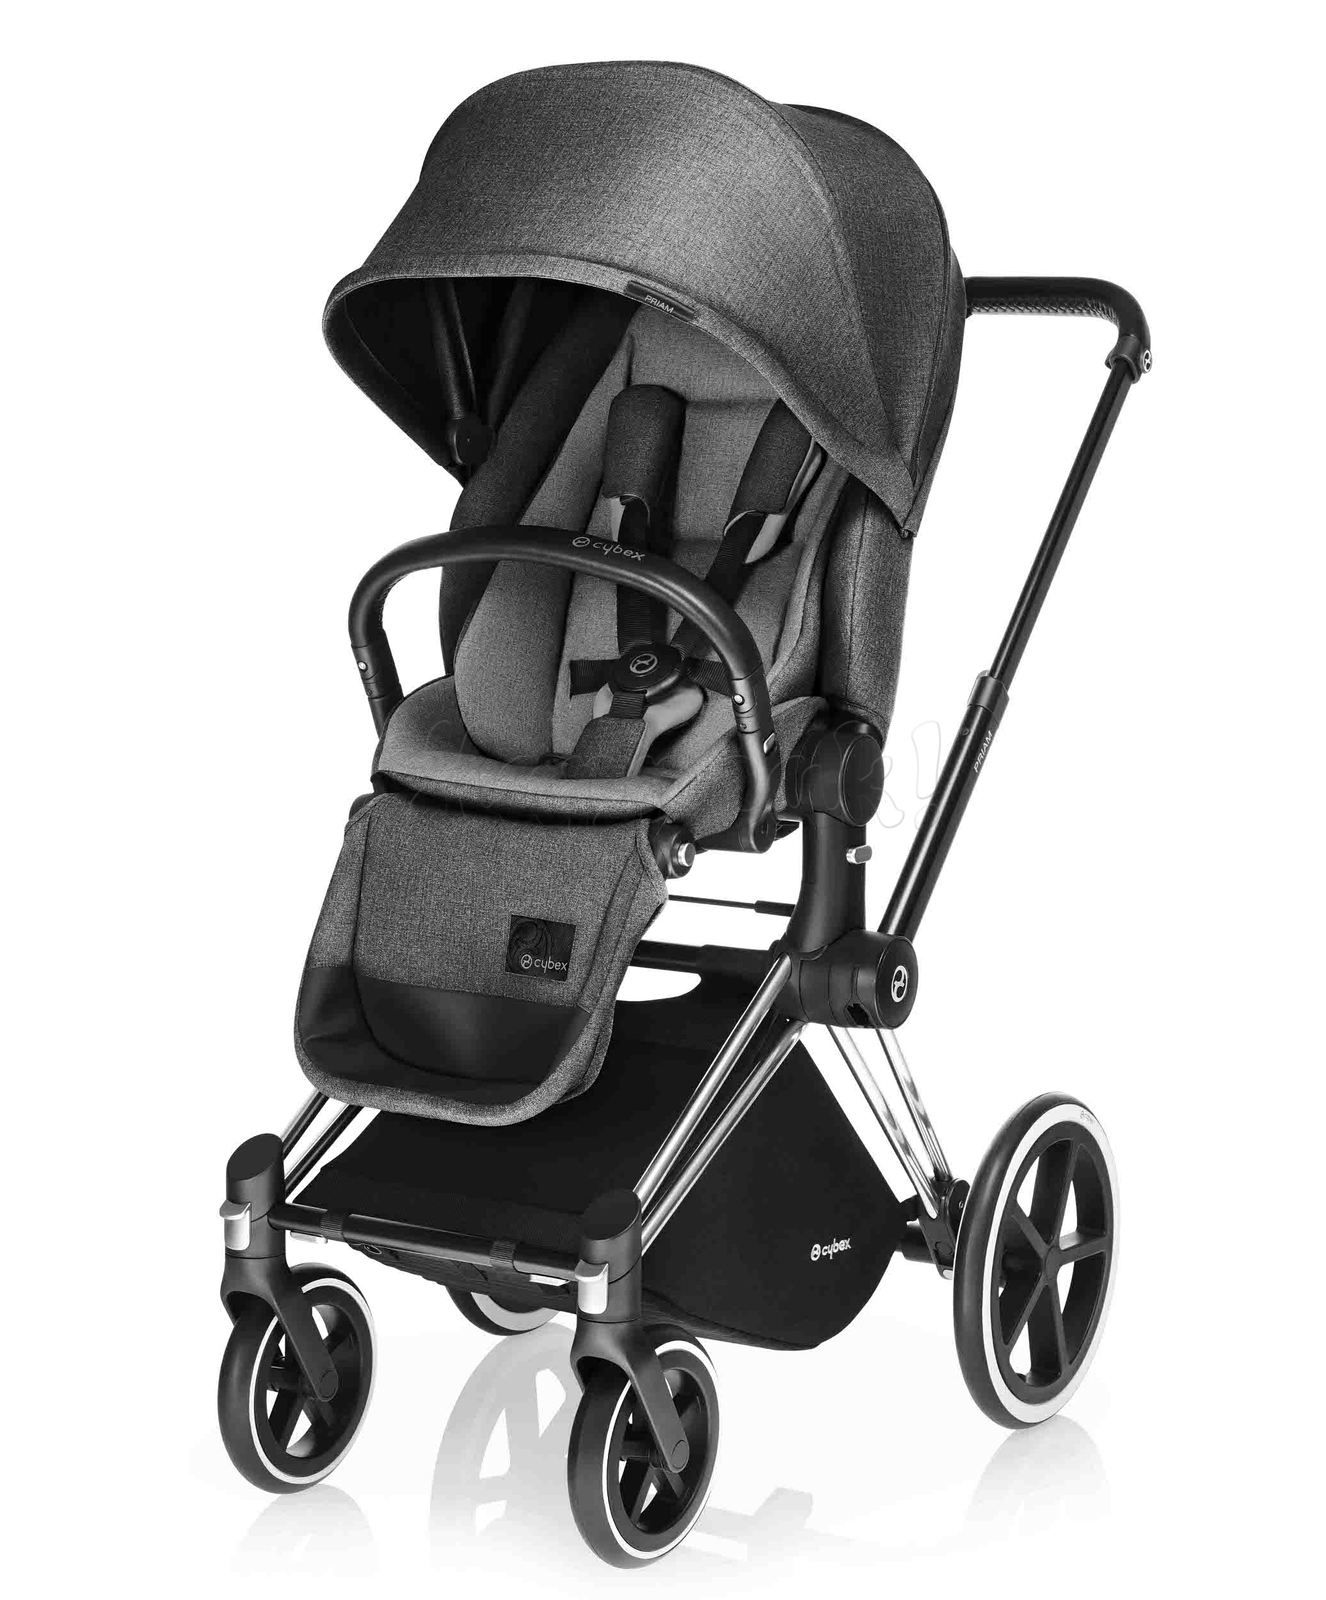 Коляска CYBEX PRIAM LUX MANHATTAN GREY 2 В 1 на раме TREKKING